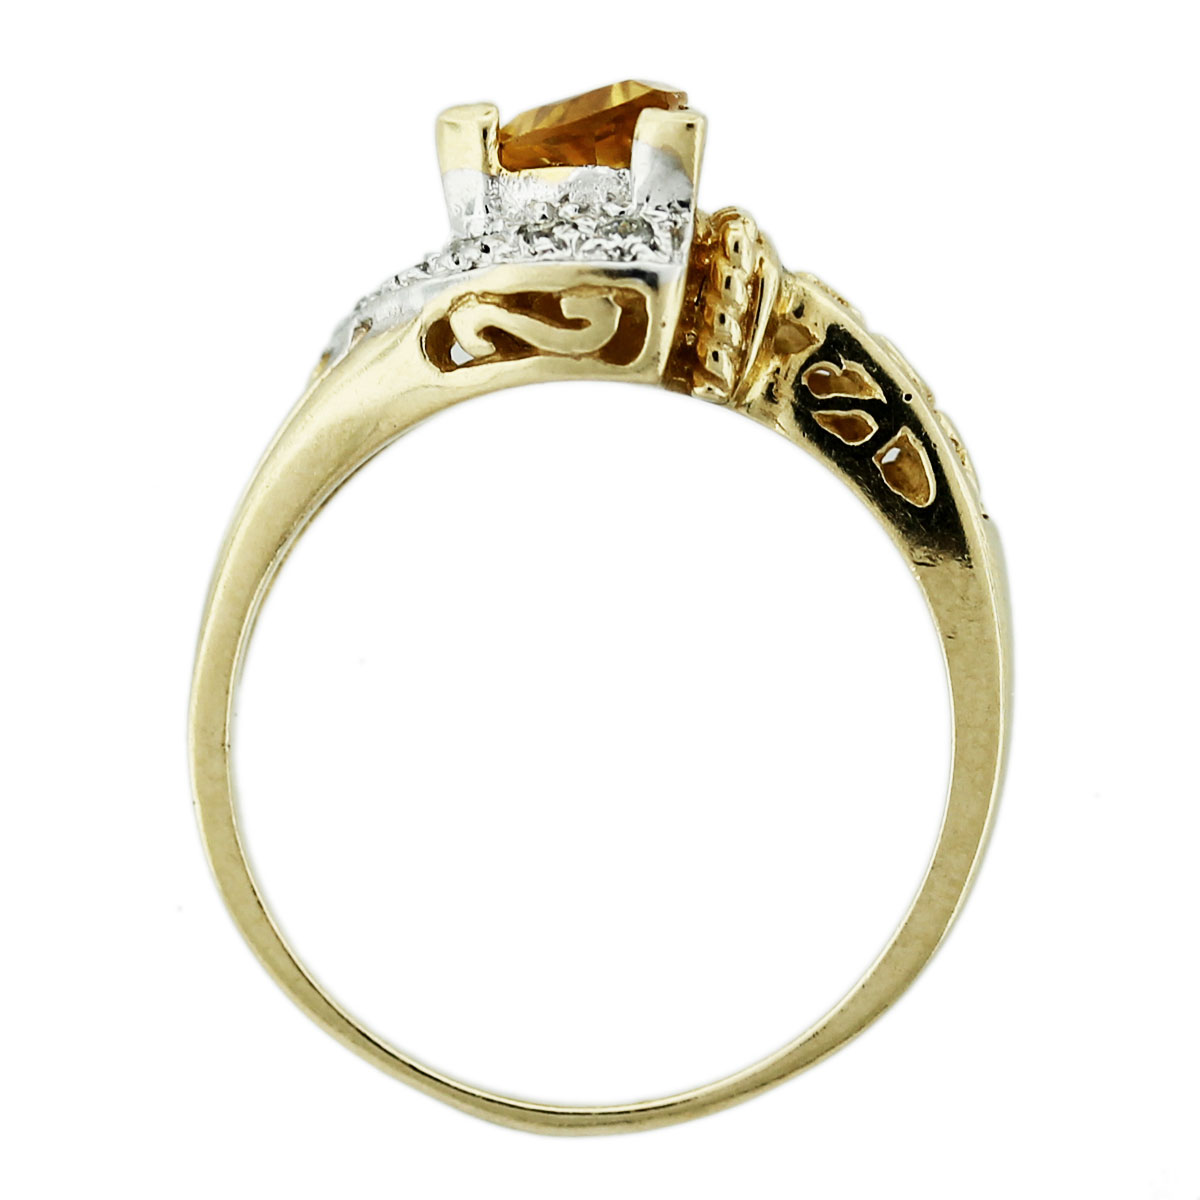 How Much Is A K Gold Ring With Diamonds Worth